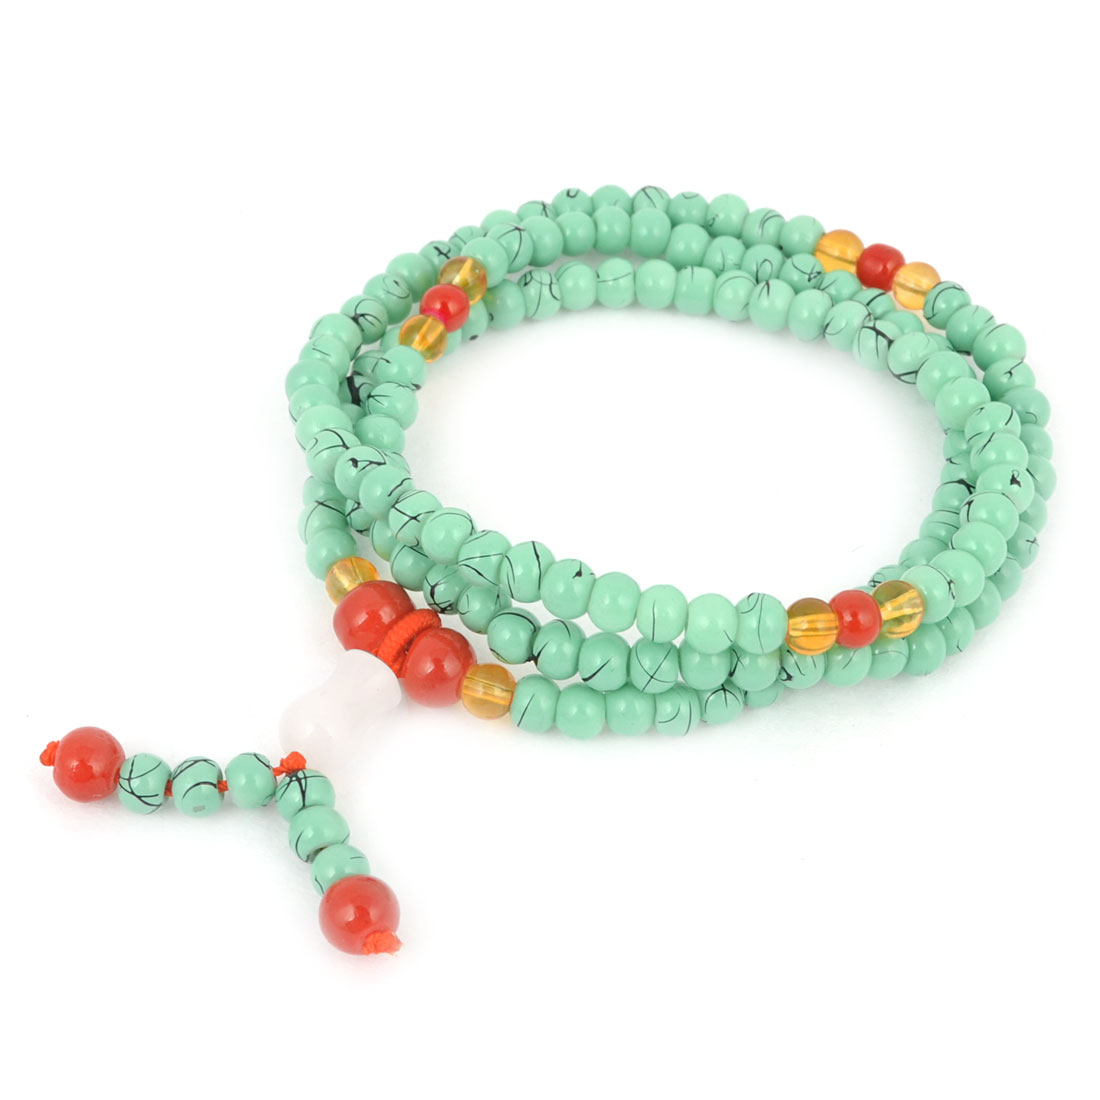 Ladies Plastic Round Beads Detailing Elastic Decorated Stretchy Band Bangle Bracelet Light Green